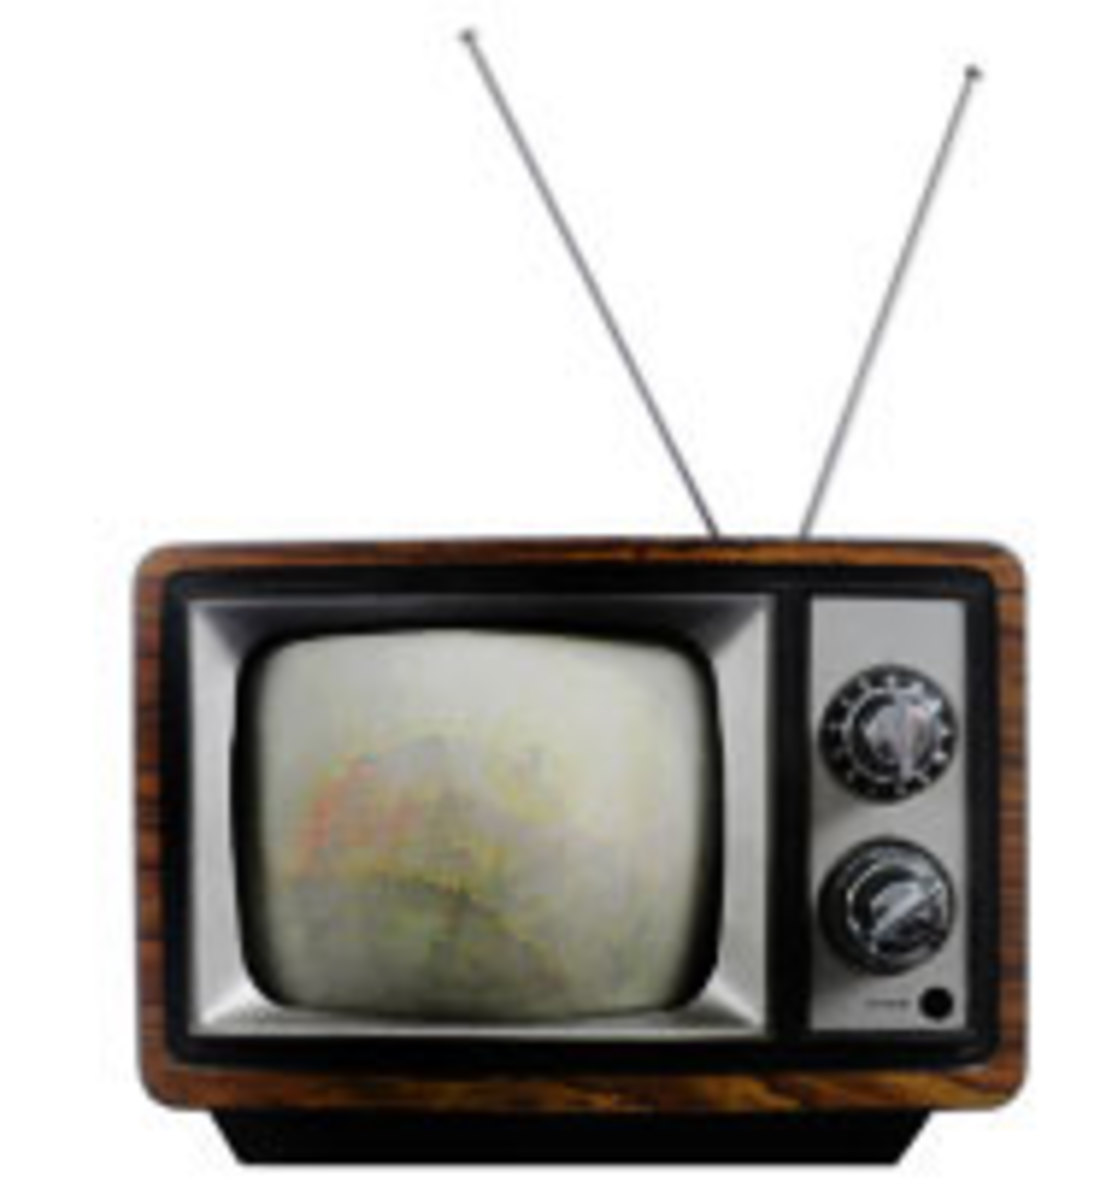 Like many other electronics, TVs contain chemicals that, if disposed of improperly, can damage our health and our environment.